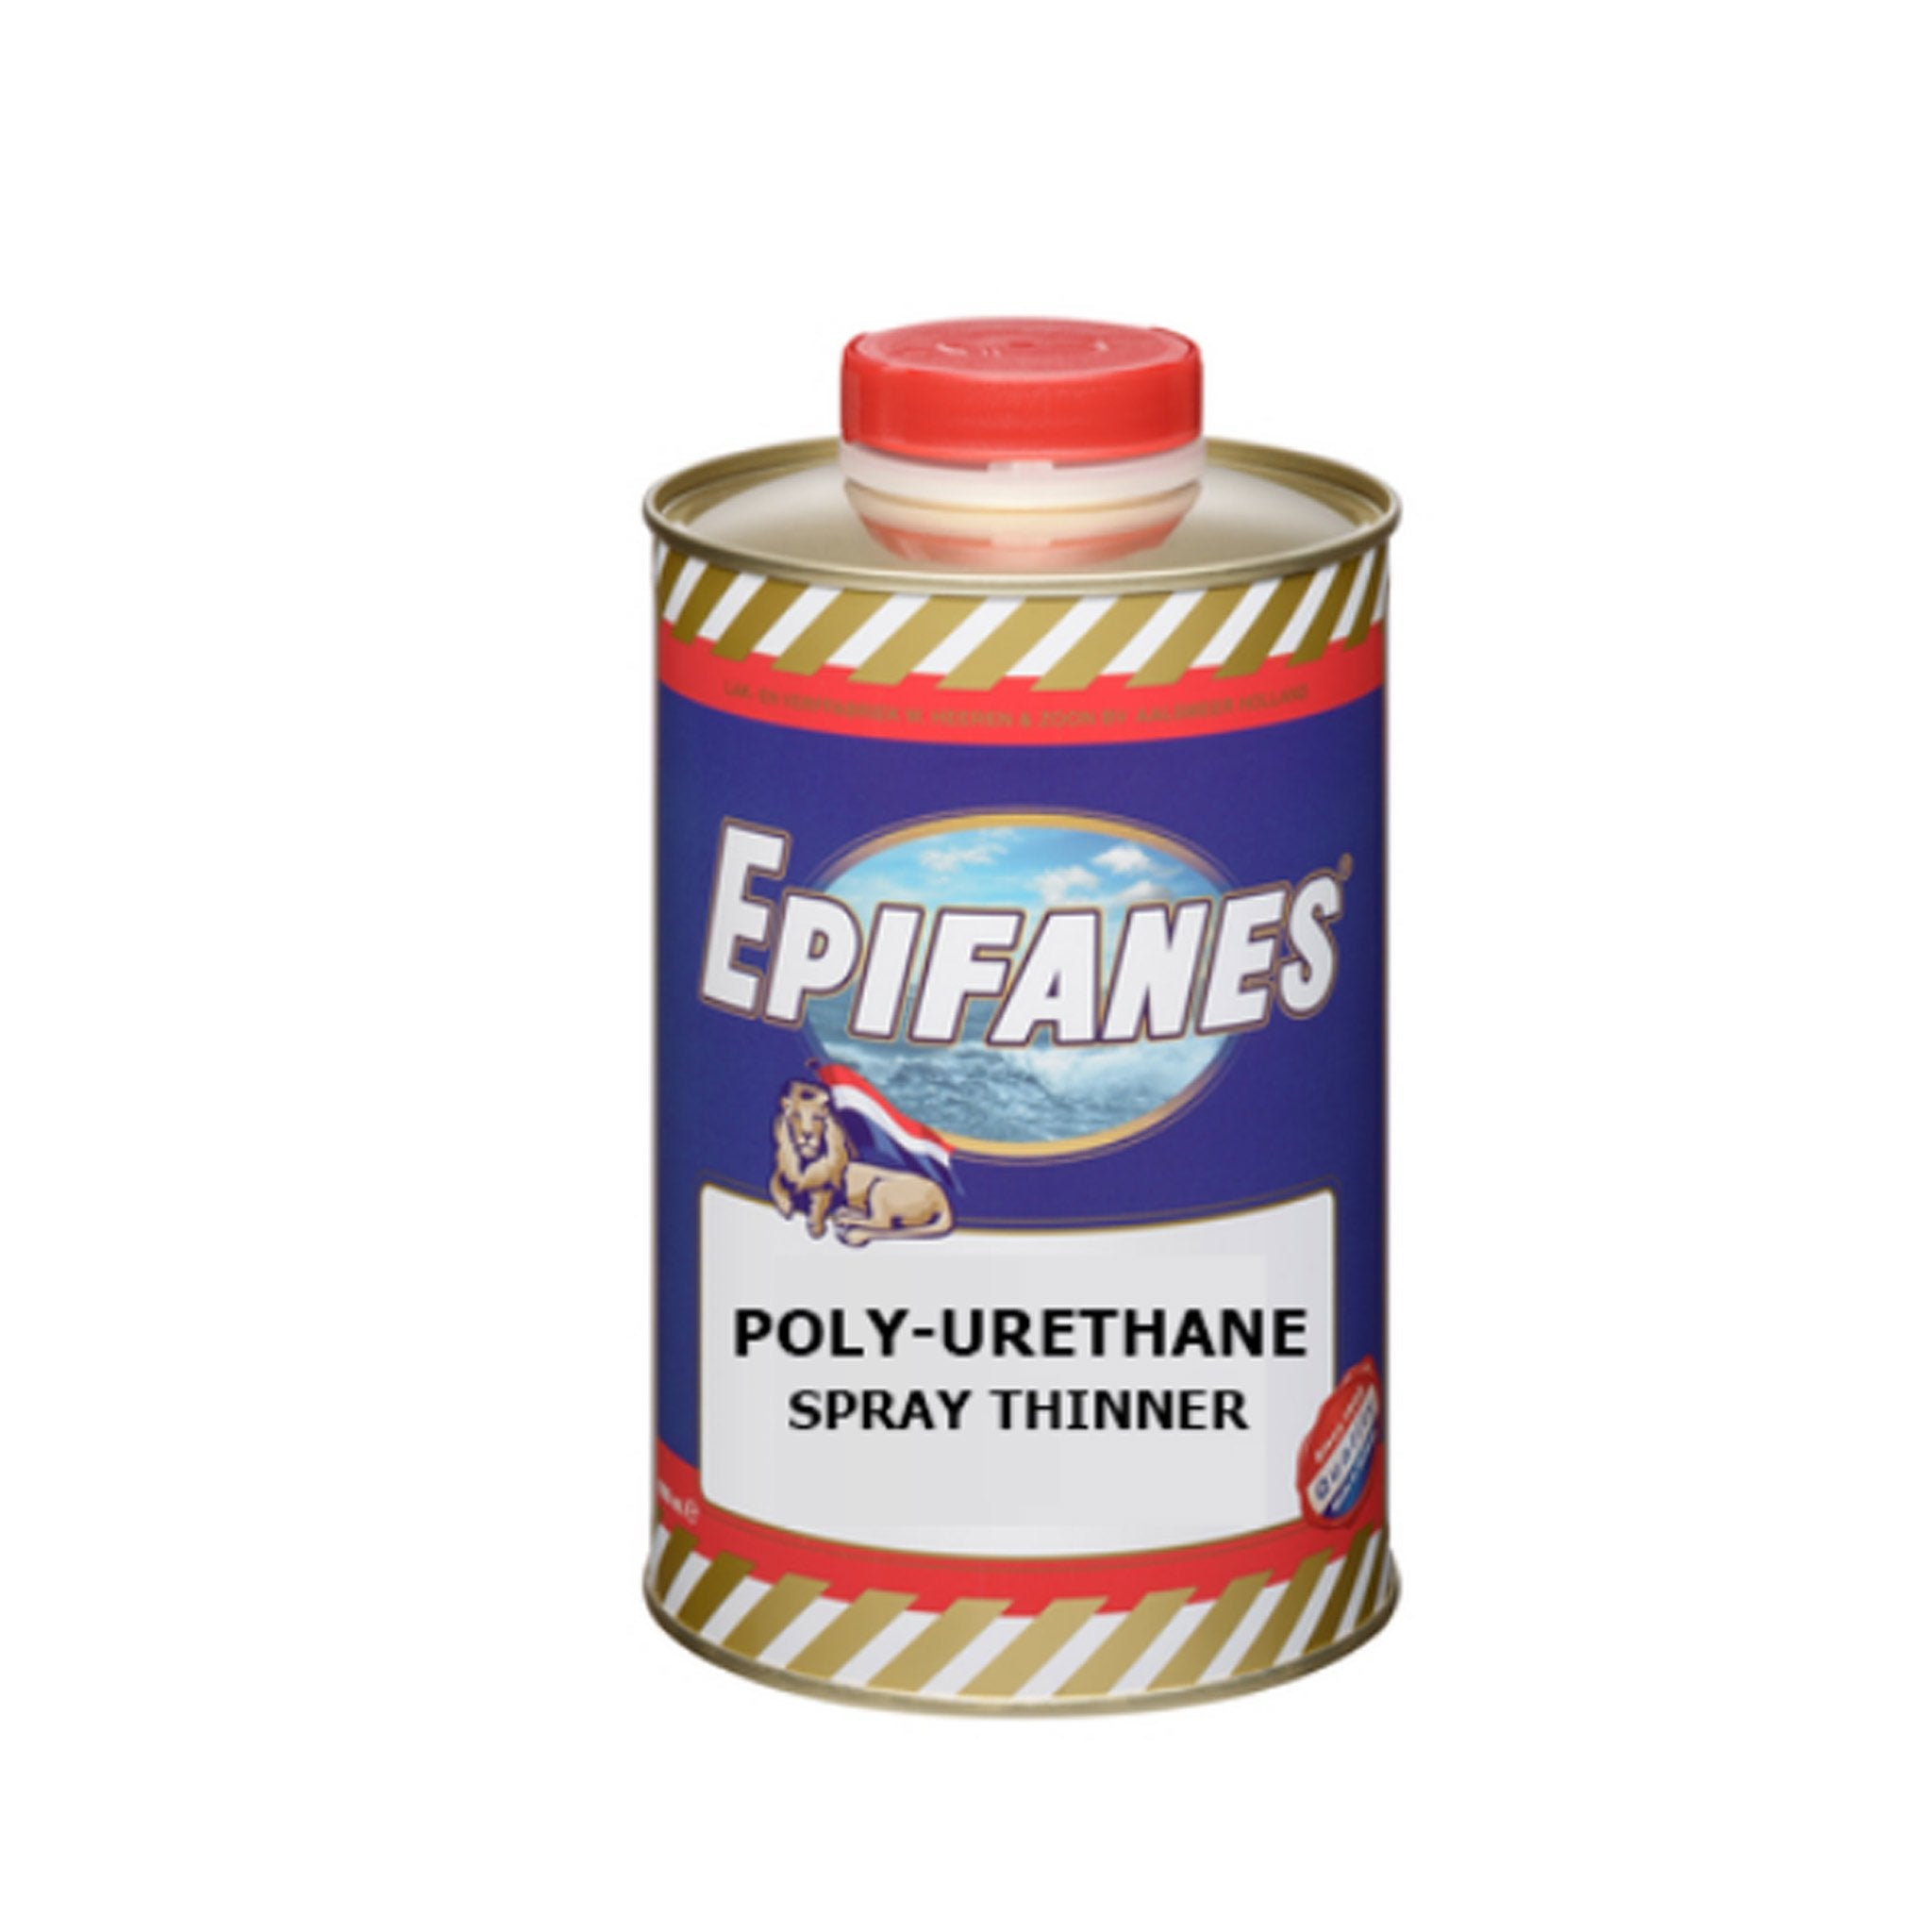 Epifanes Polyurethane [PU] Spray Thinner for Varnish - Arthur Beale